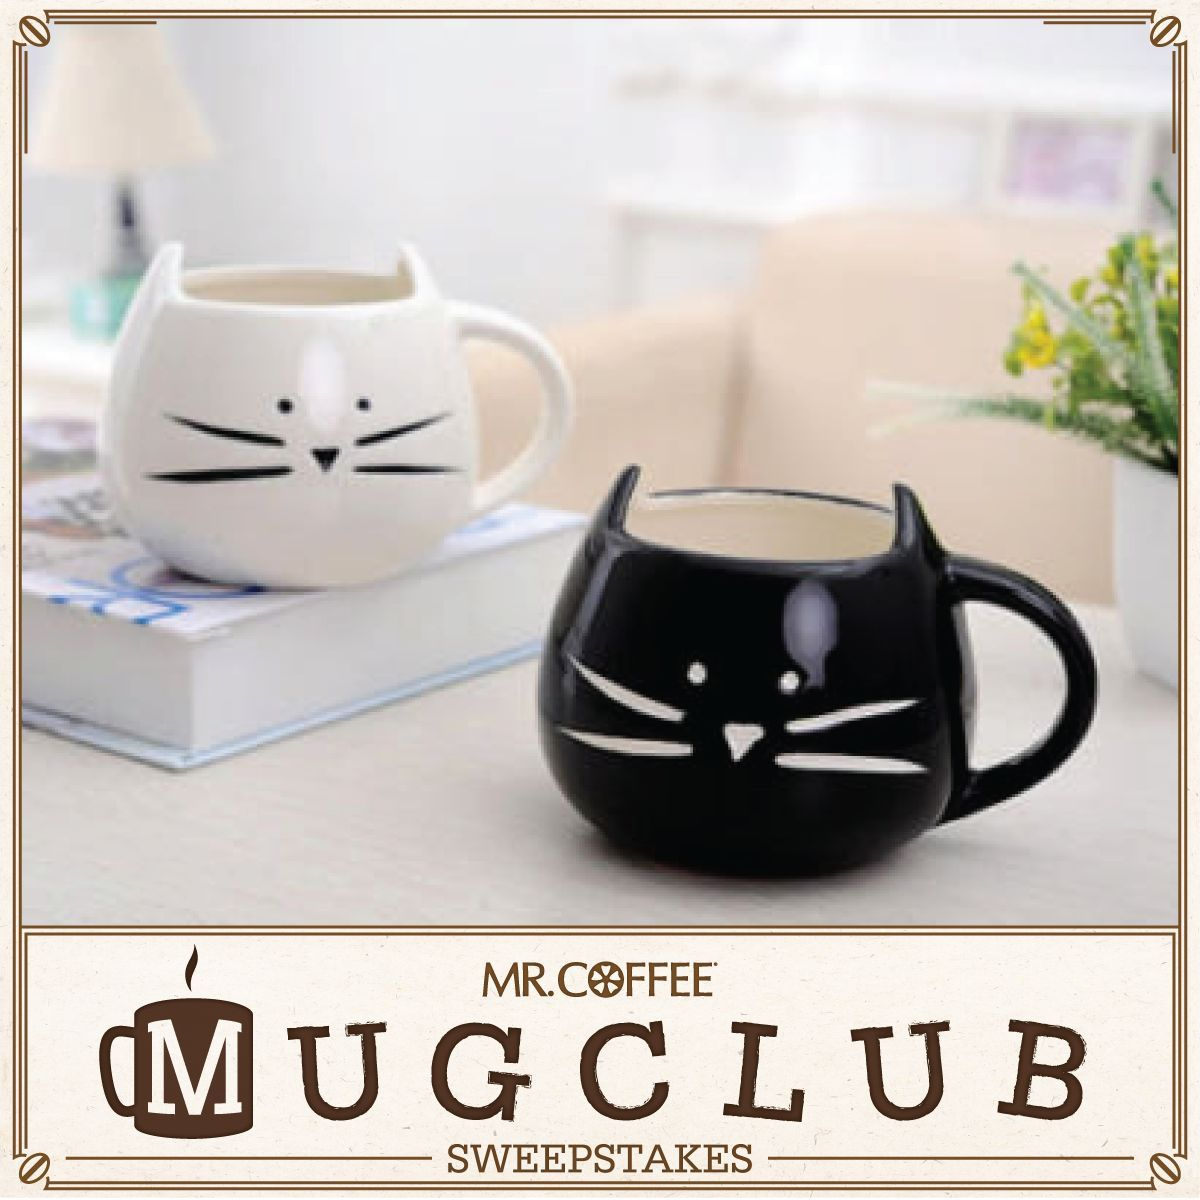 Meow....enjoy your cup of morning coffee out of this cute